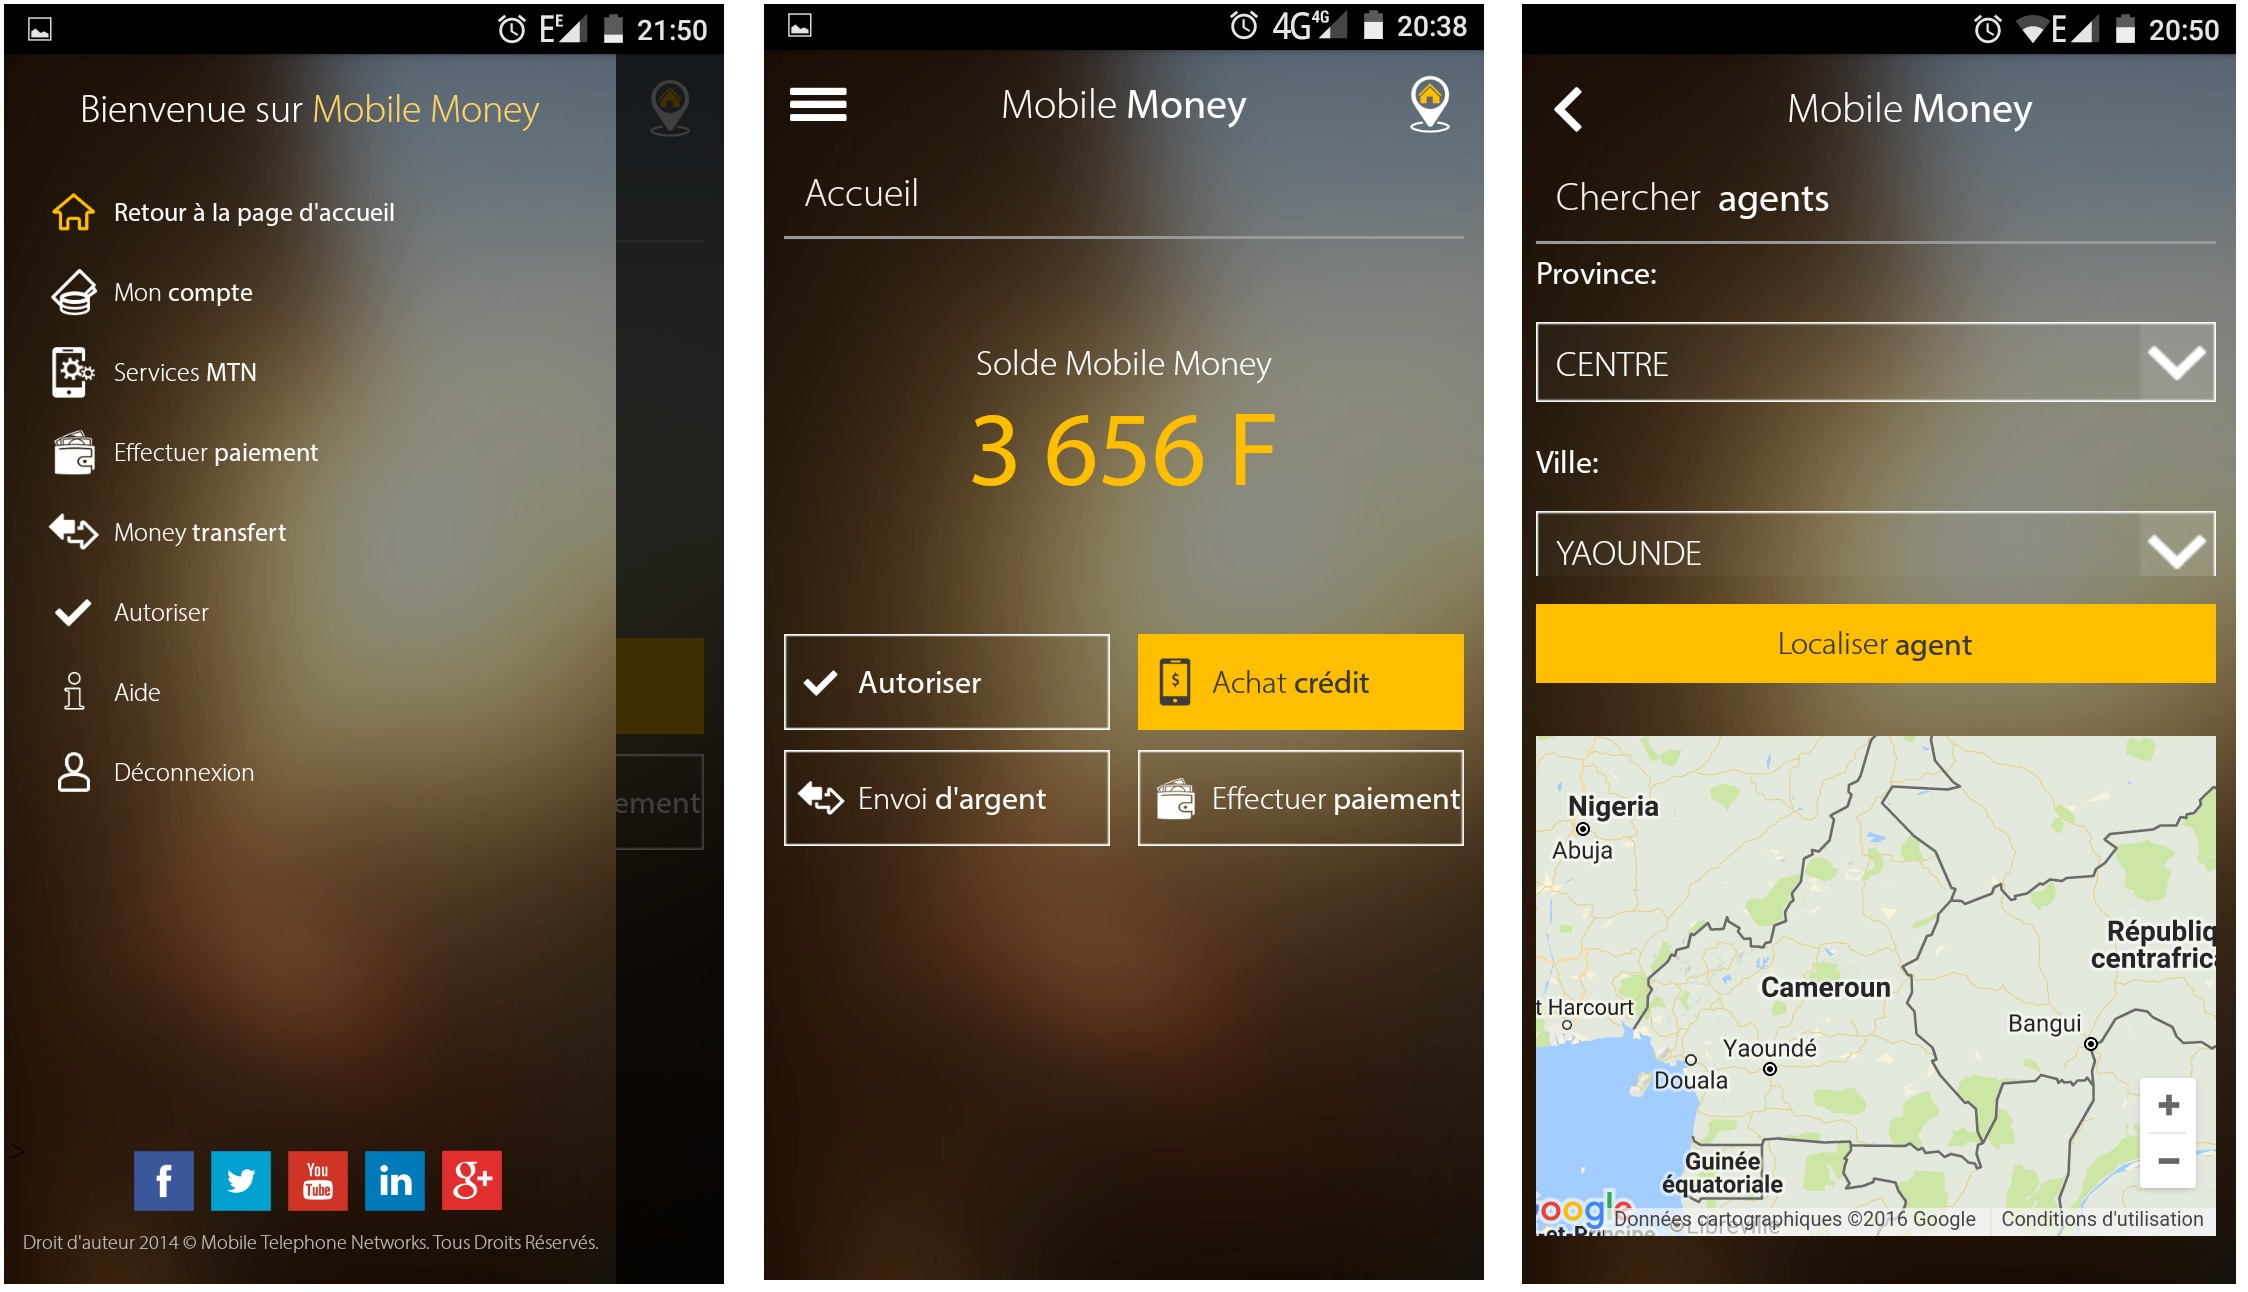 MyMTN Mobile Money Cameroun